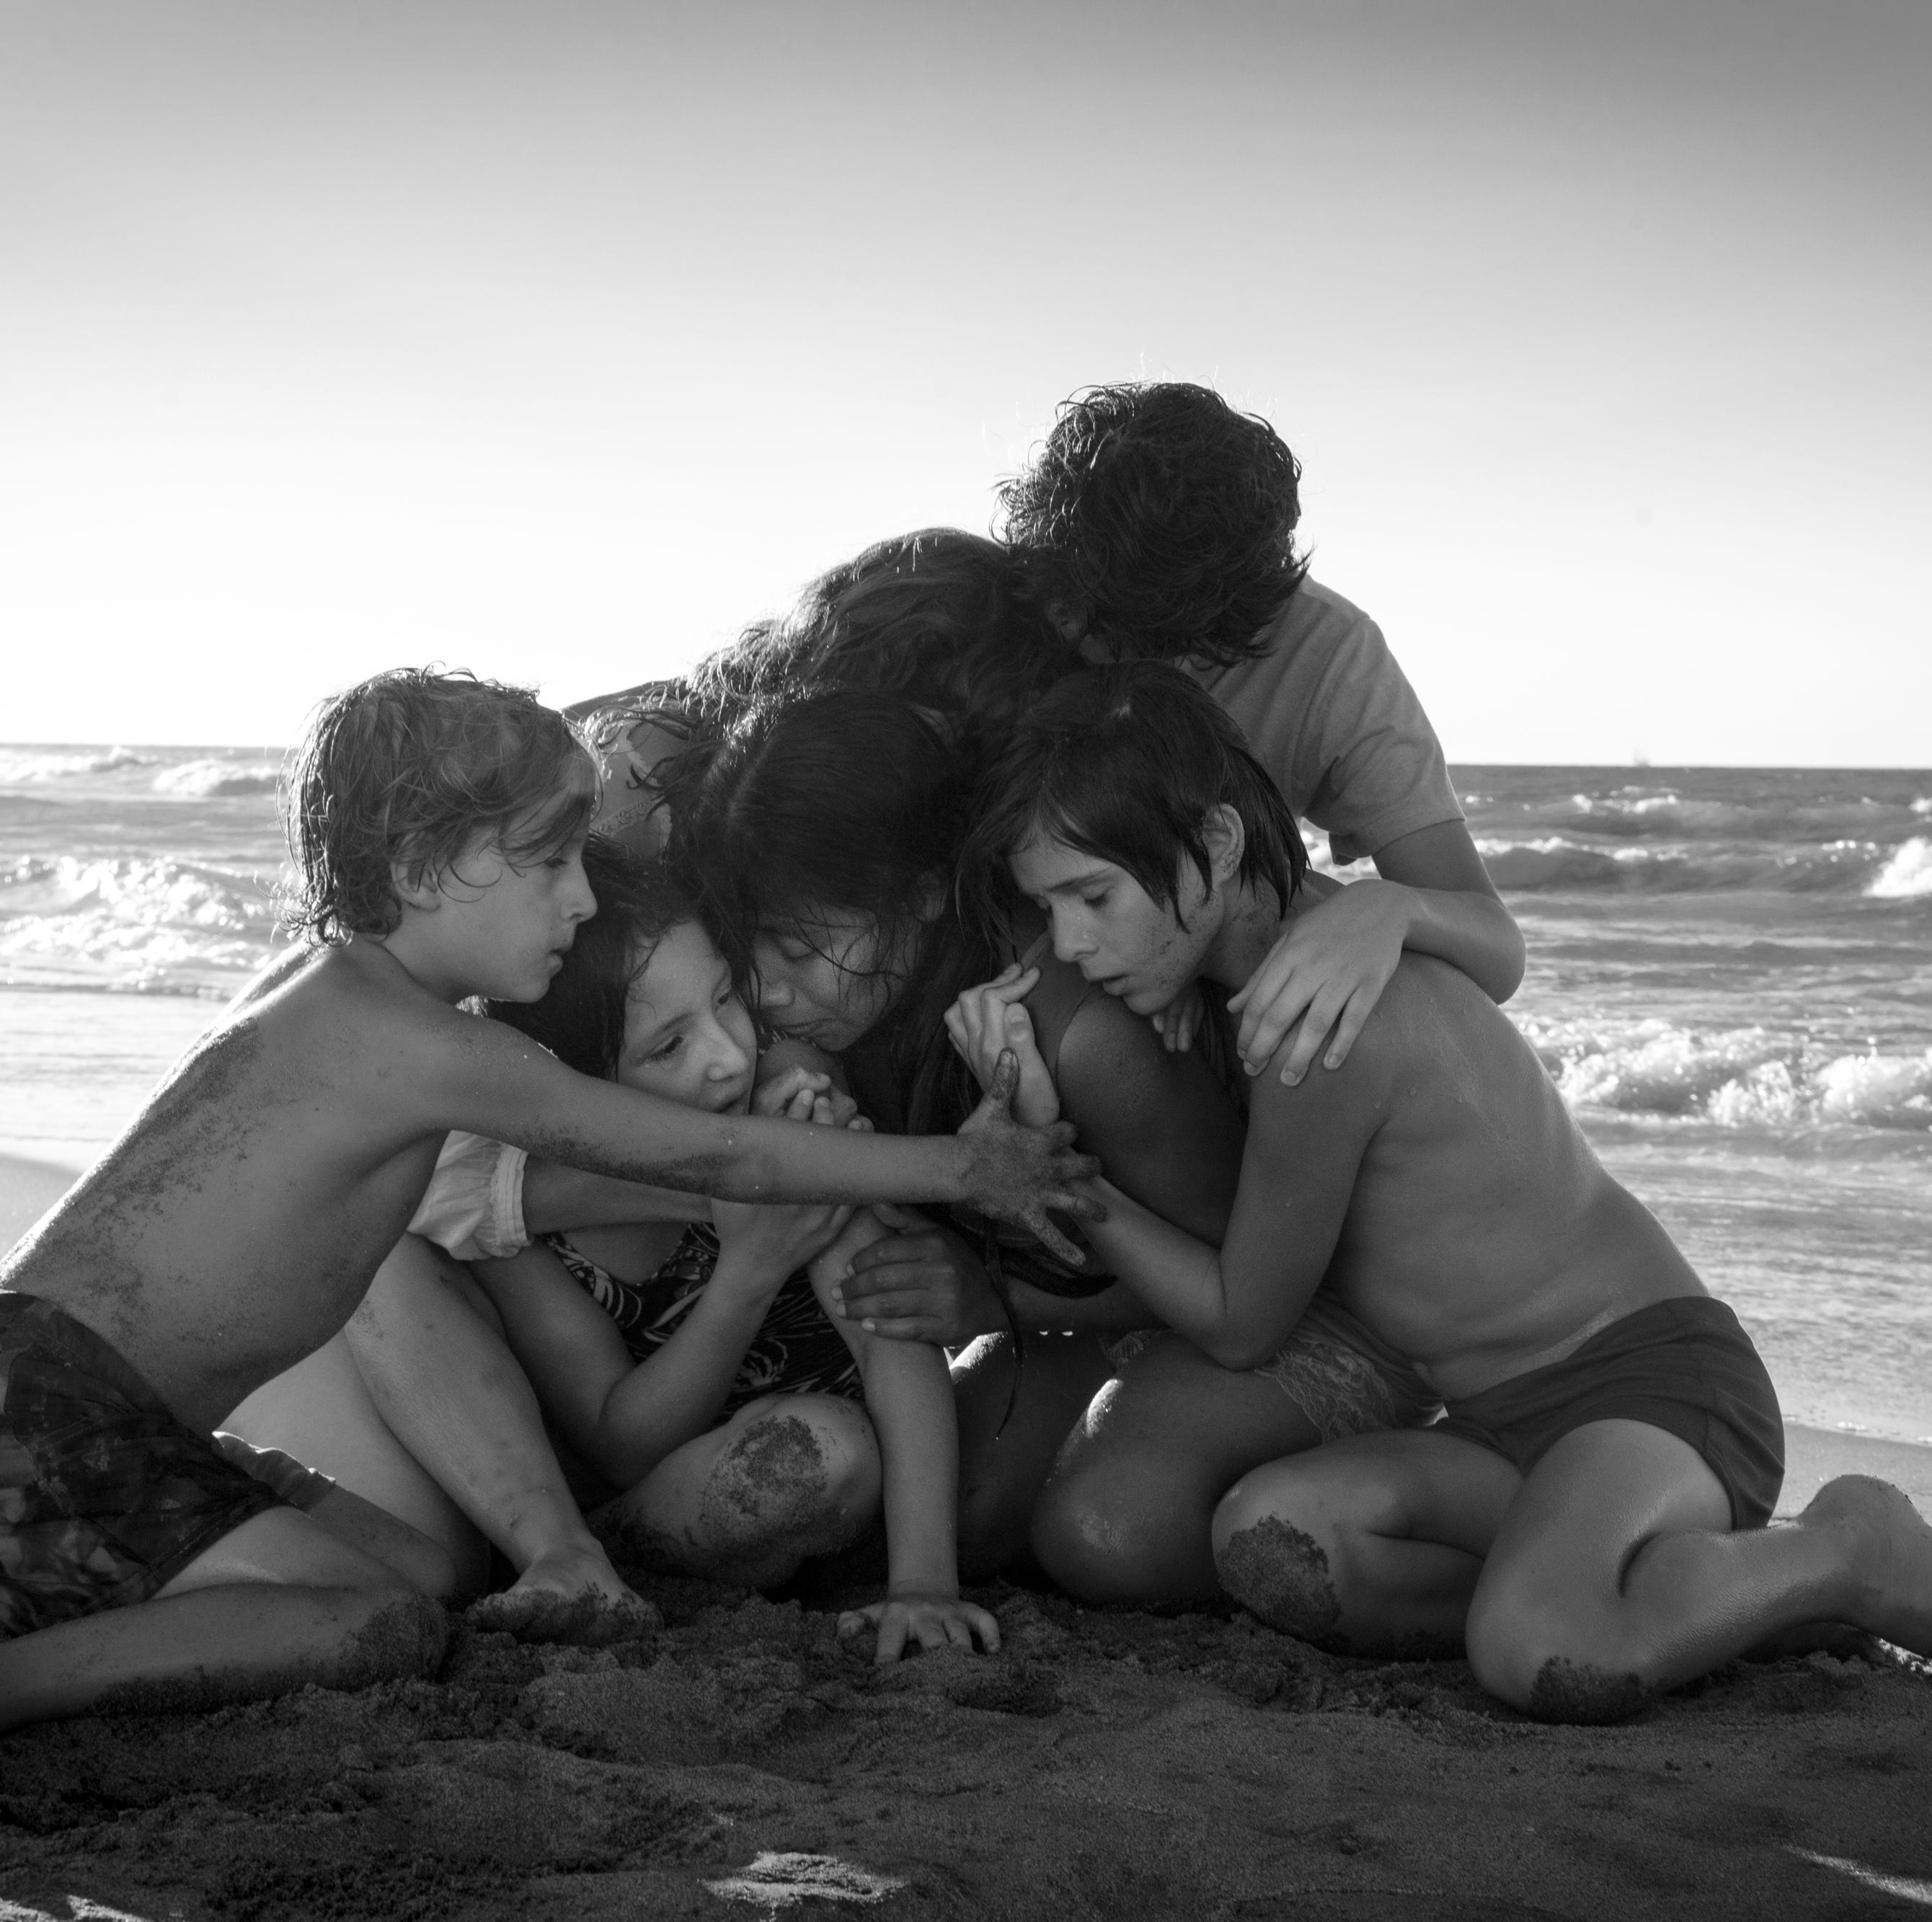 Southern film critics pick 'Roma,' 'Favourite' as year's best films